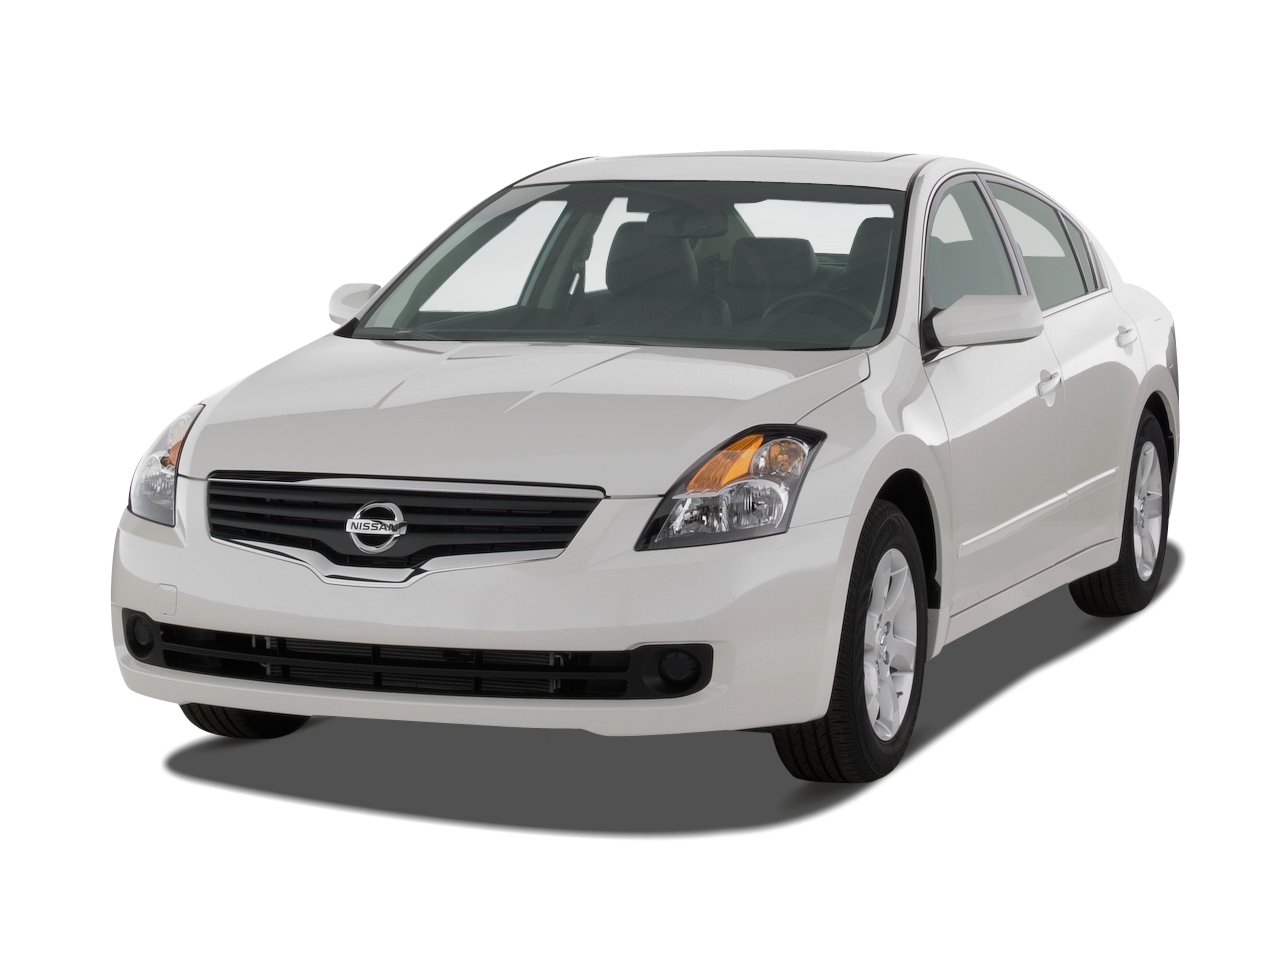 2008 Nissan Altima Hybrid Fuel Efficient News Car Features And Reviews Automobile Magazine